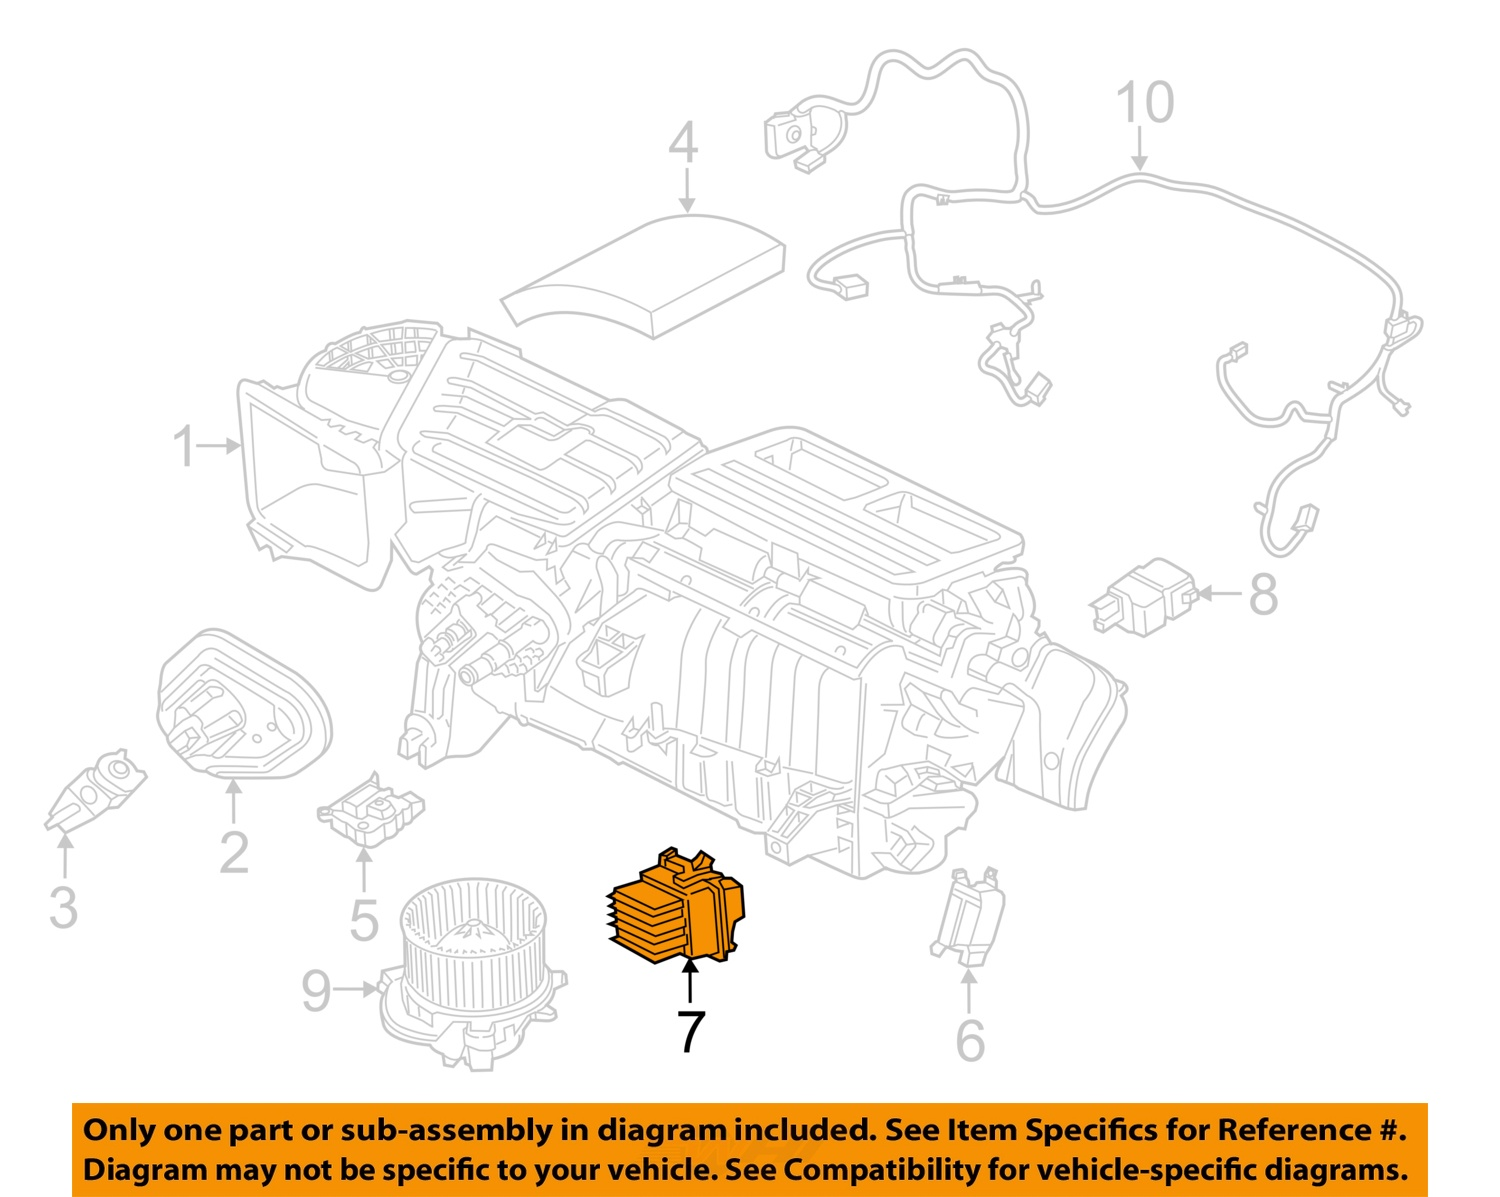 Ford Oem Parts : Ford oem parts diagram online auto wiring